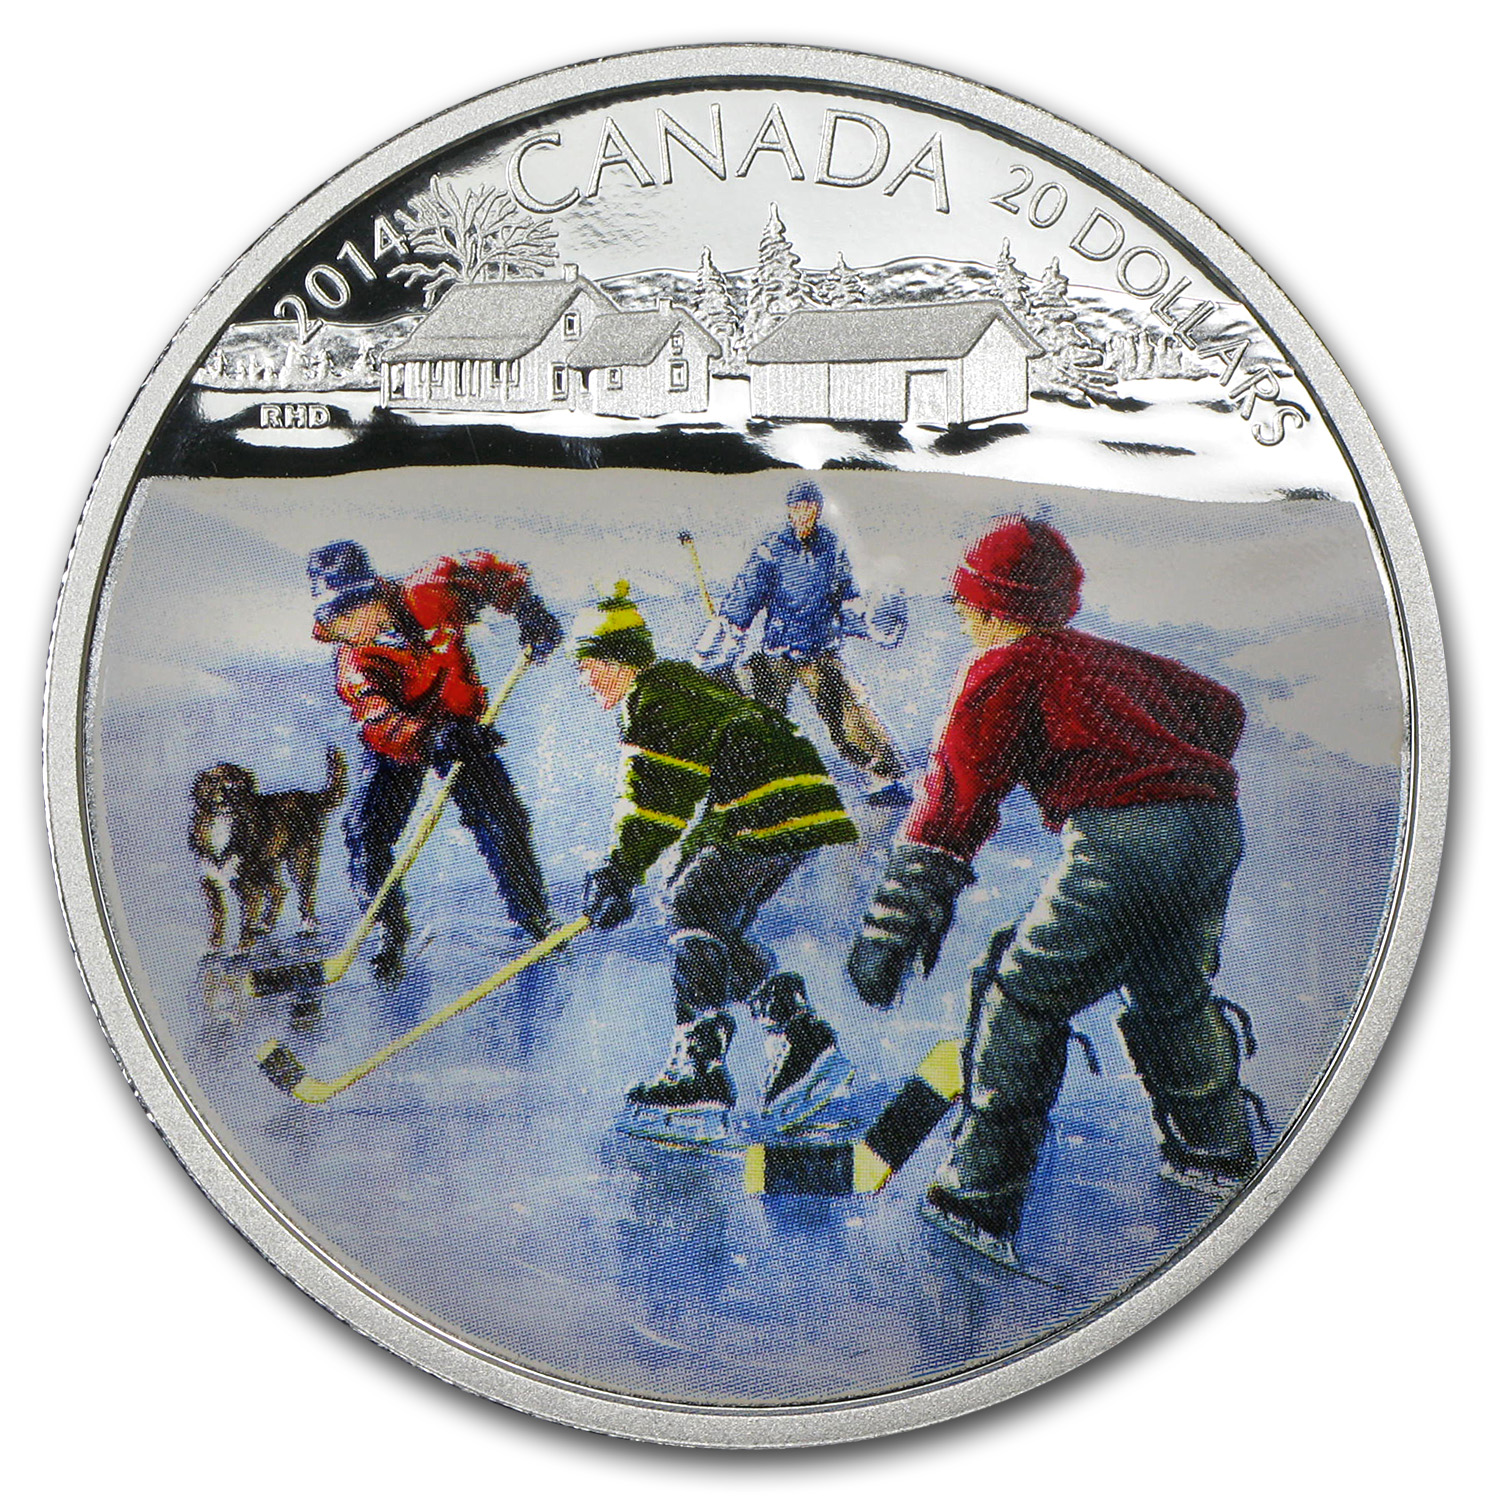 2014 1 oz Silver Canadian $20 Pond Hockey